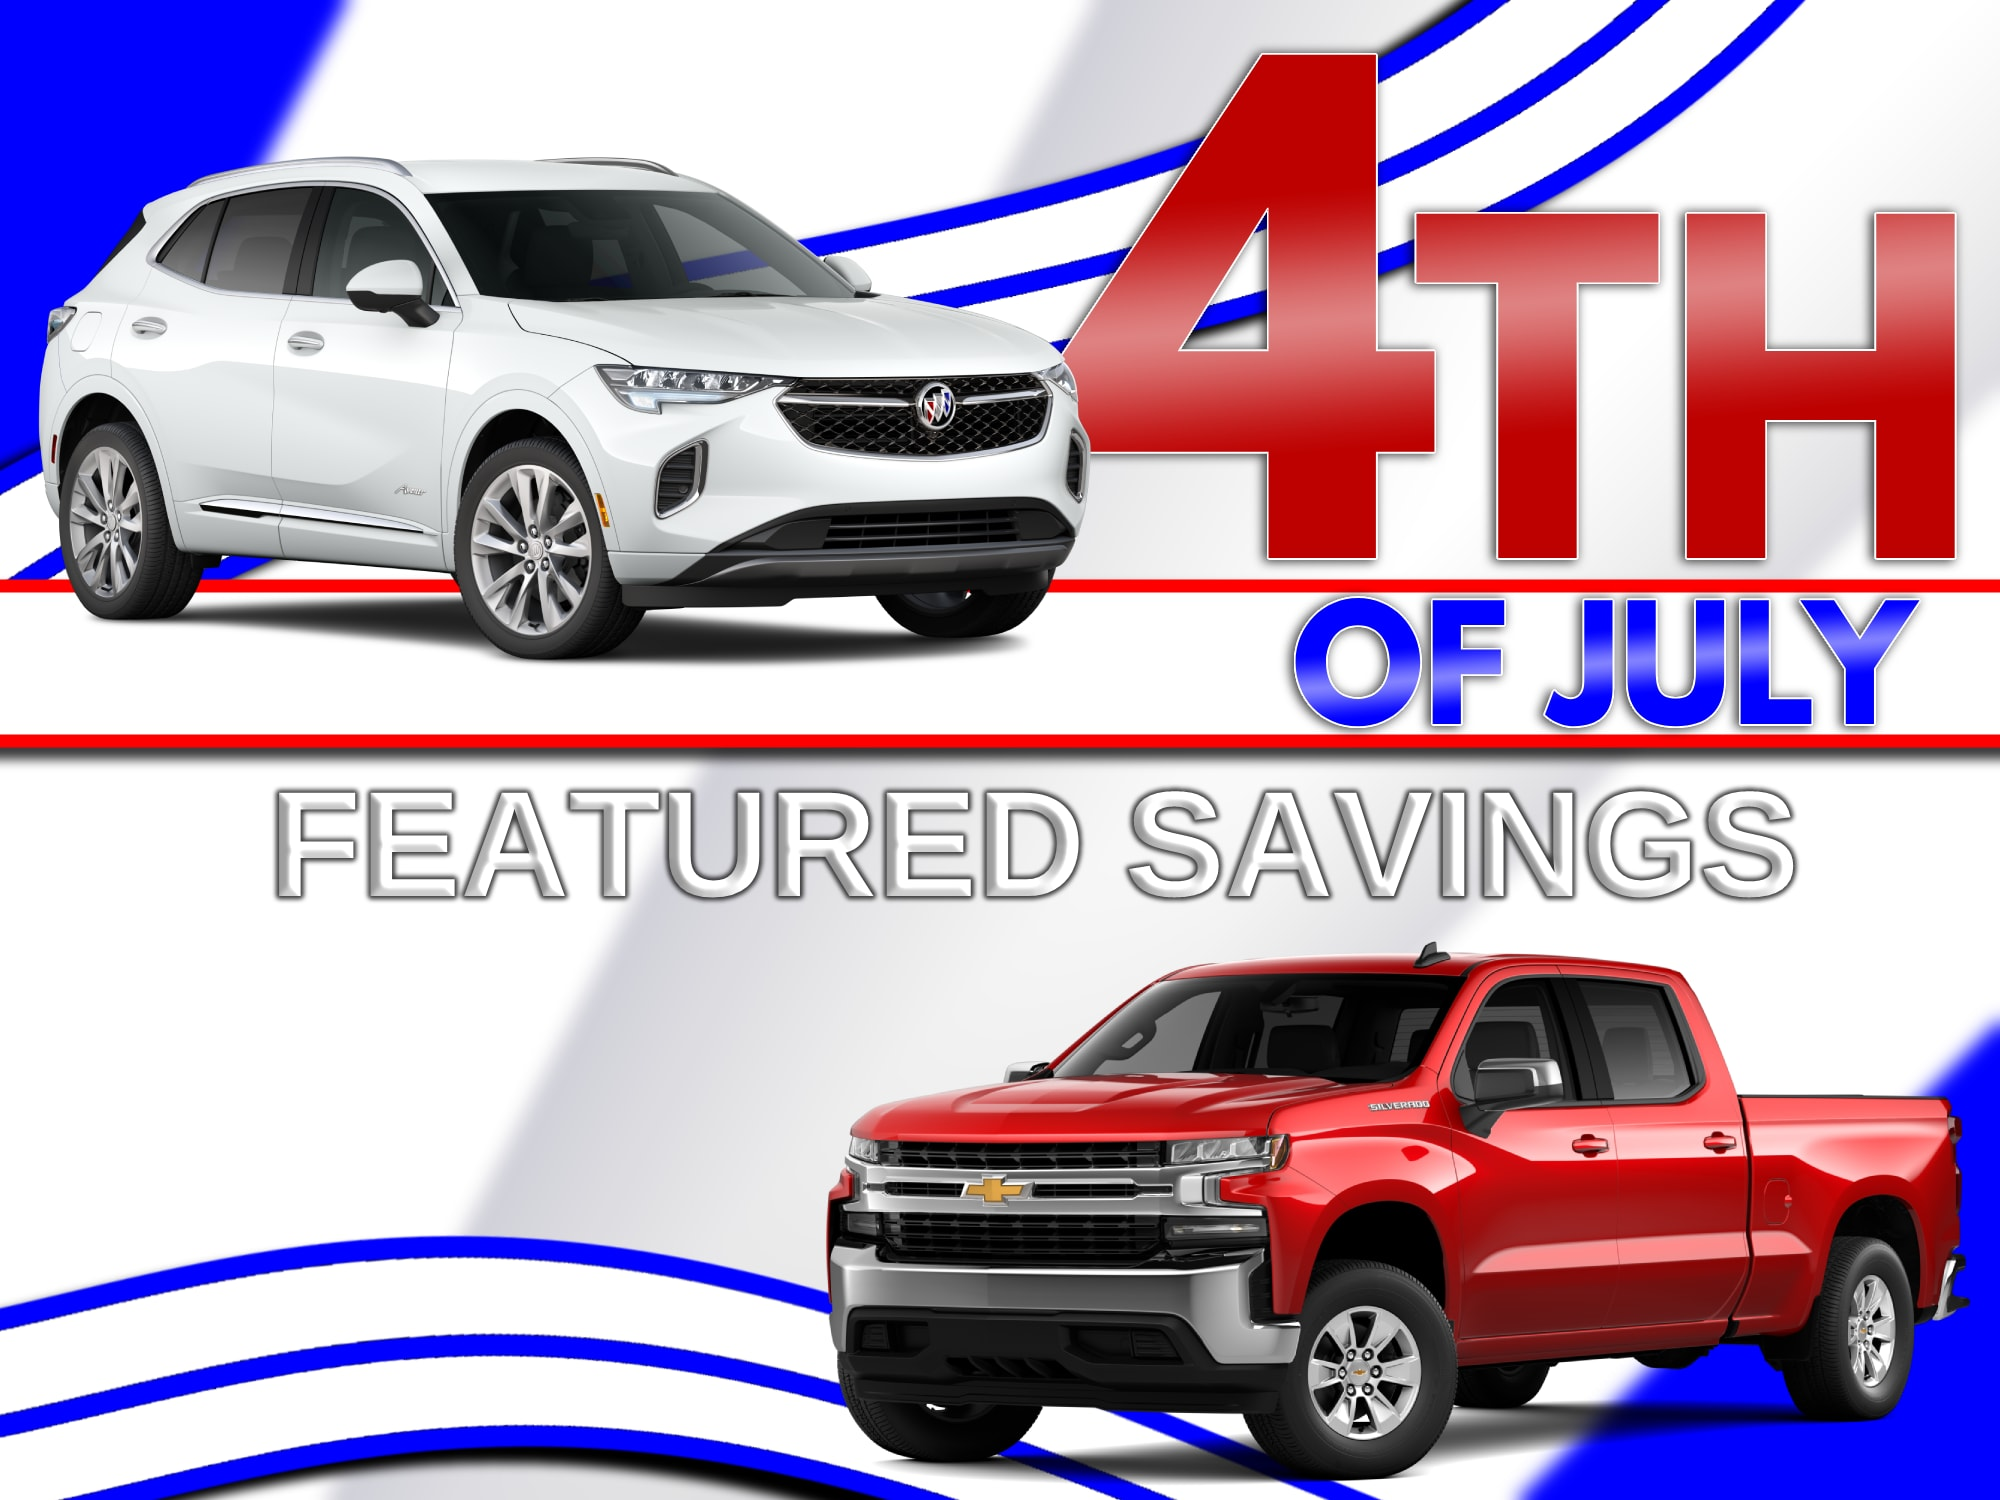 Red White and Blue Patterned Back ground with Red Chevrolet Silverado and White Buick Enclave